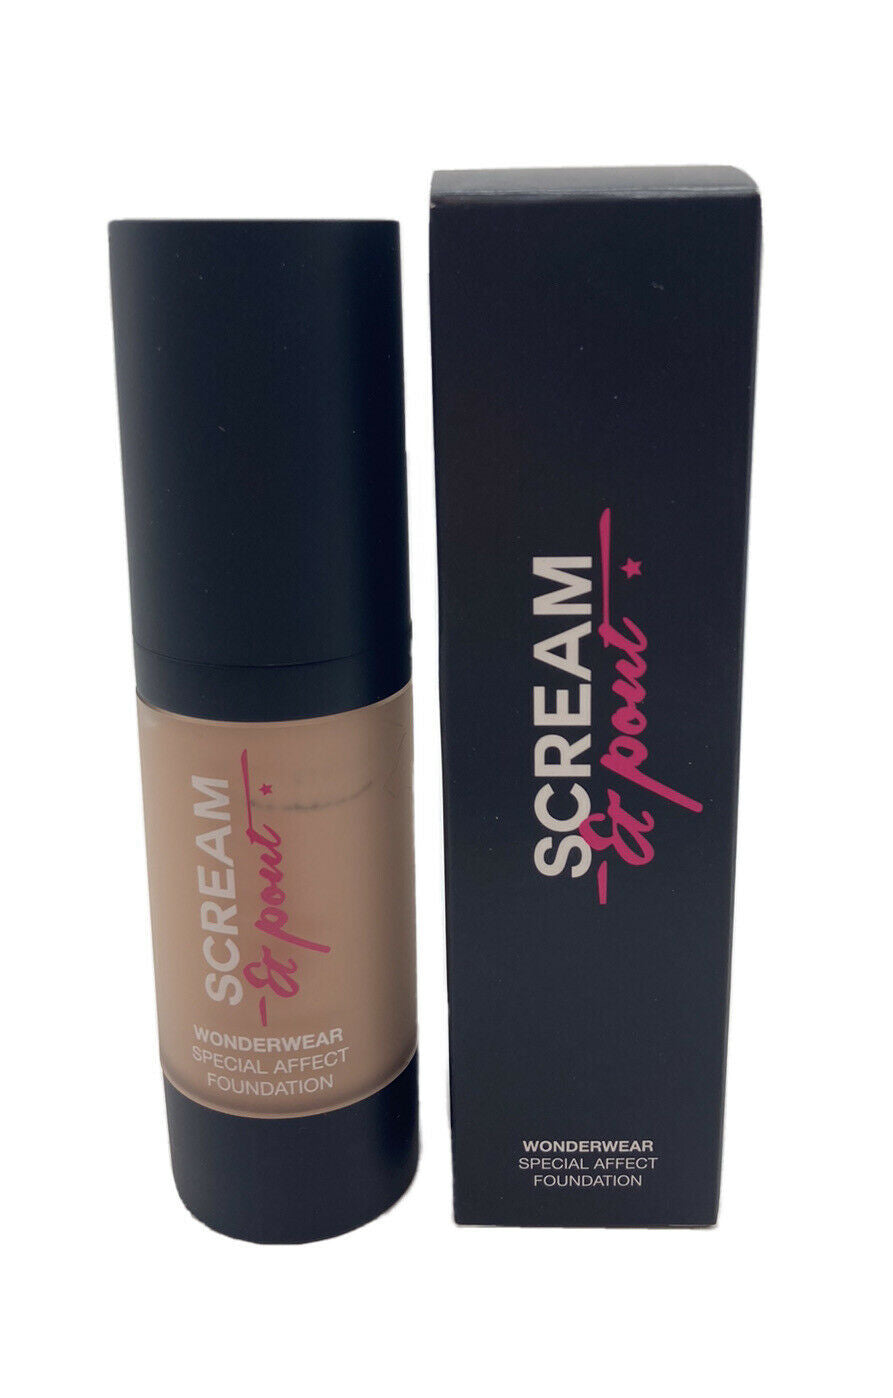 SCREAM&POUT WONDERWEAR SPECIAL EFFECT FOUNDATION 30ml SET OF 2 'IVORY'